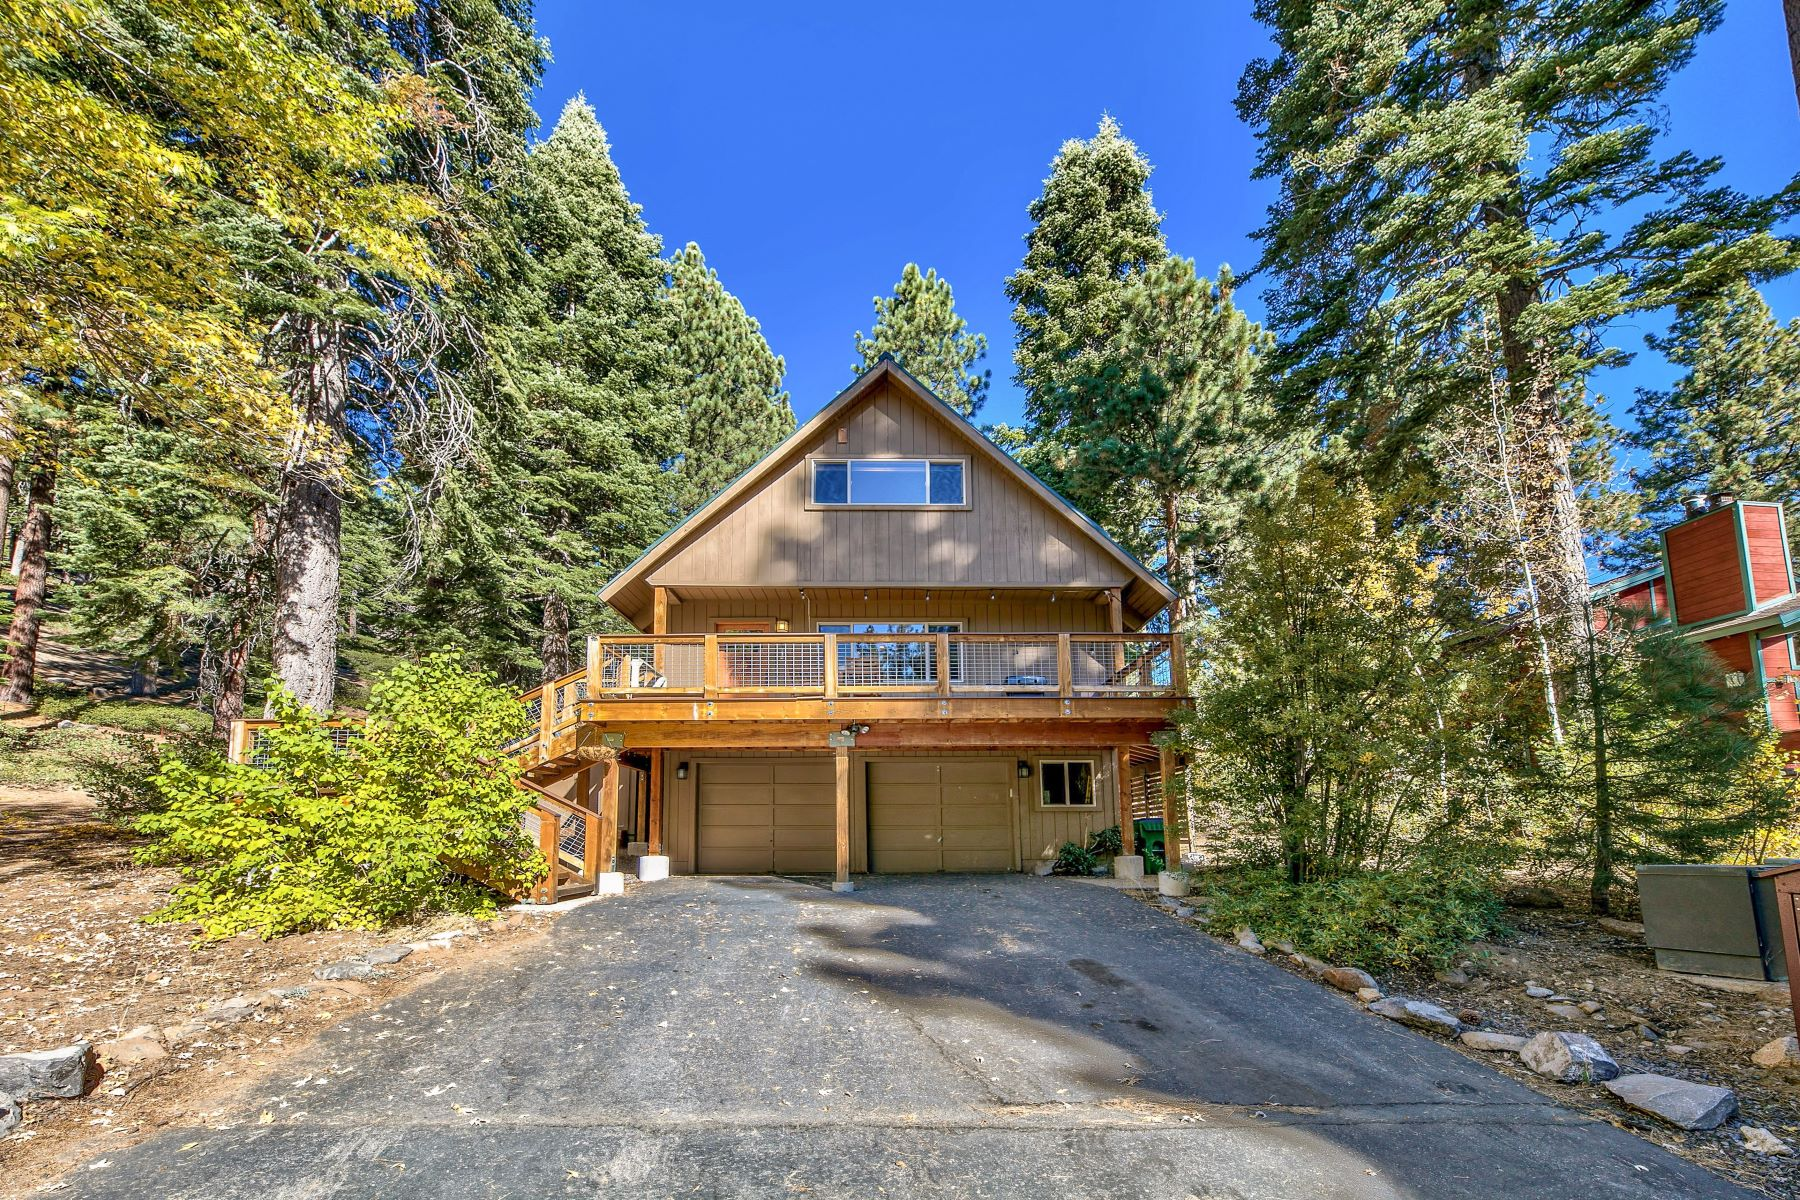 Single Family Homes for Active at Charming Tahoe Home 685 Bridger Ct Incline Village, Nevada 89451 United States